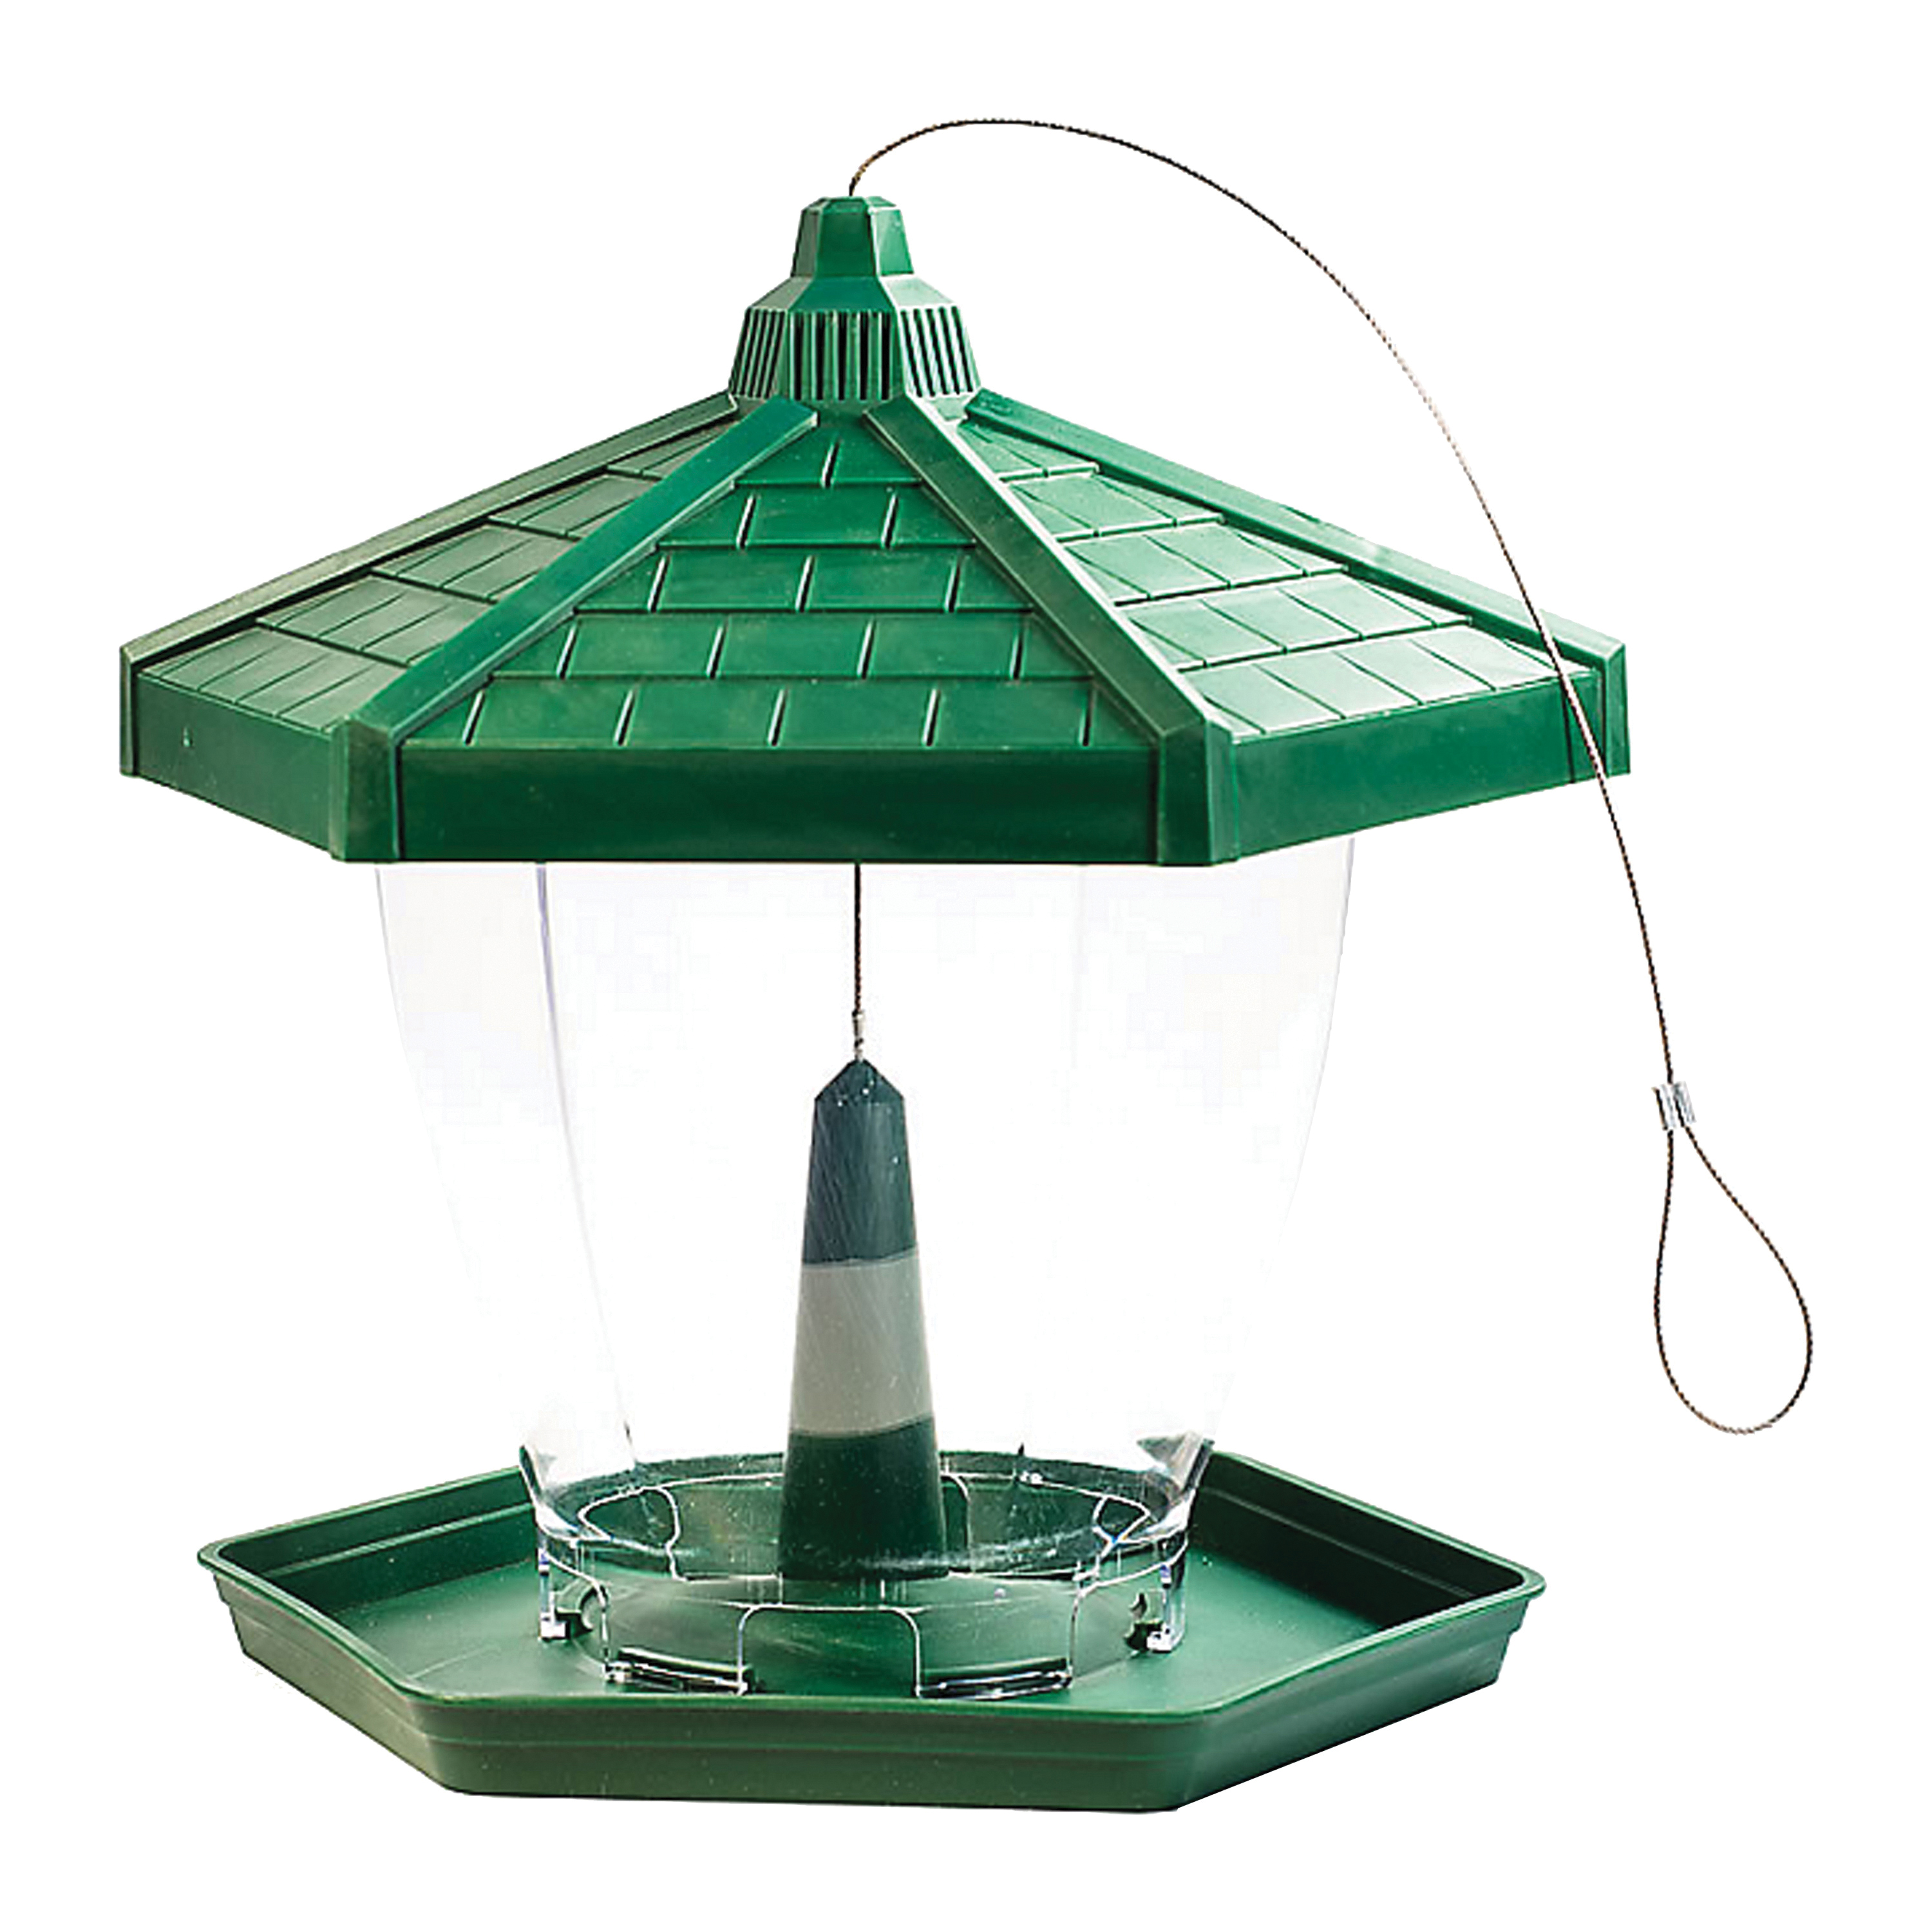 Picture of Perky-Pet HF940 Wild Bird Feeder, Perch, 4 lb, 1-Port/Perch, Plastic, Hanging Mounting